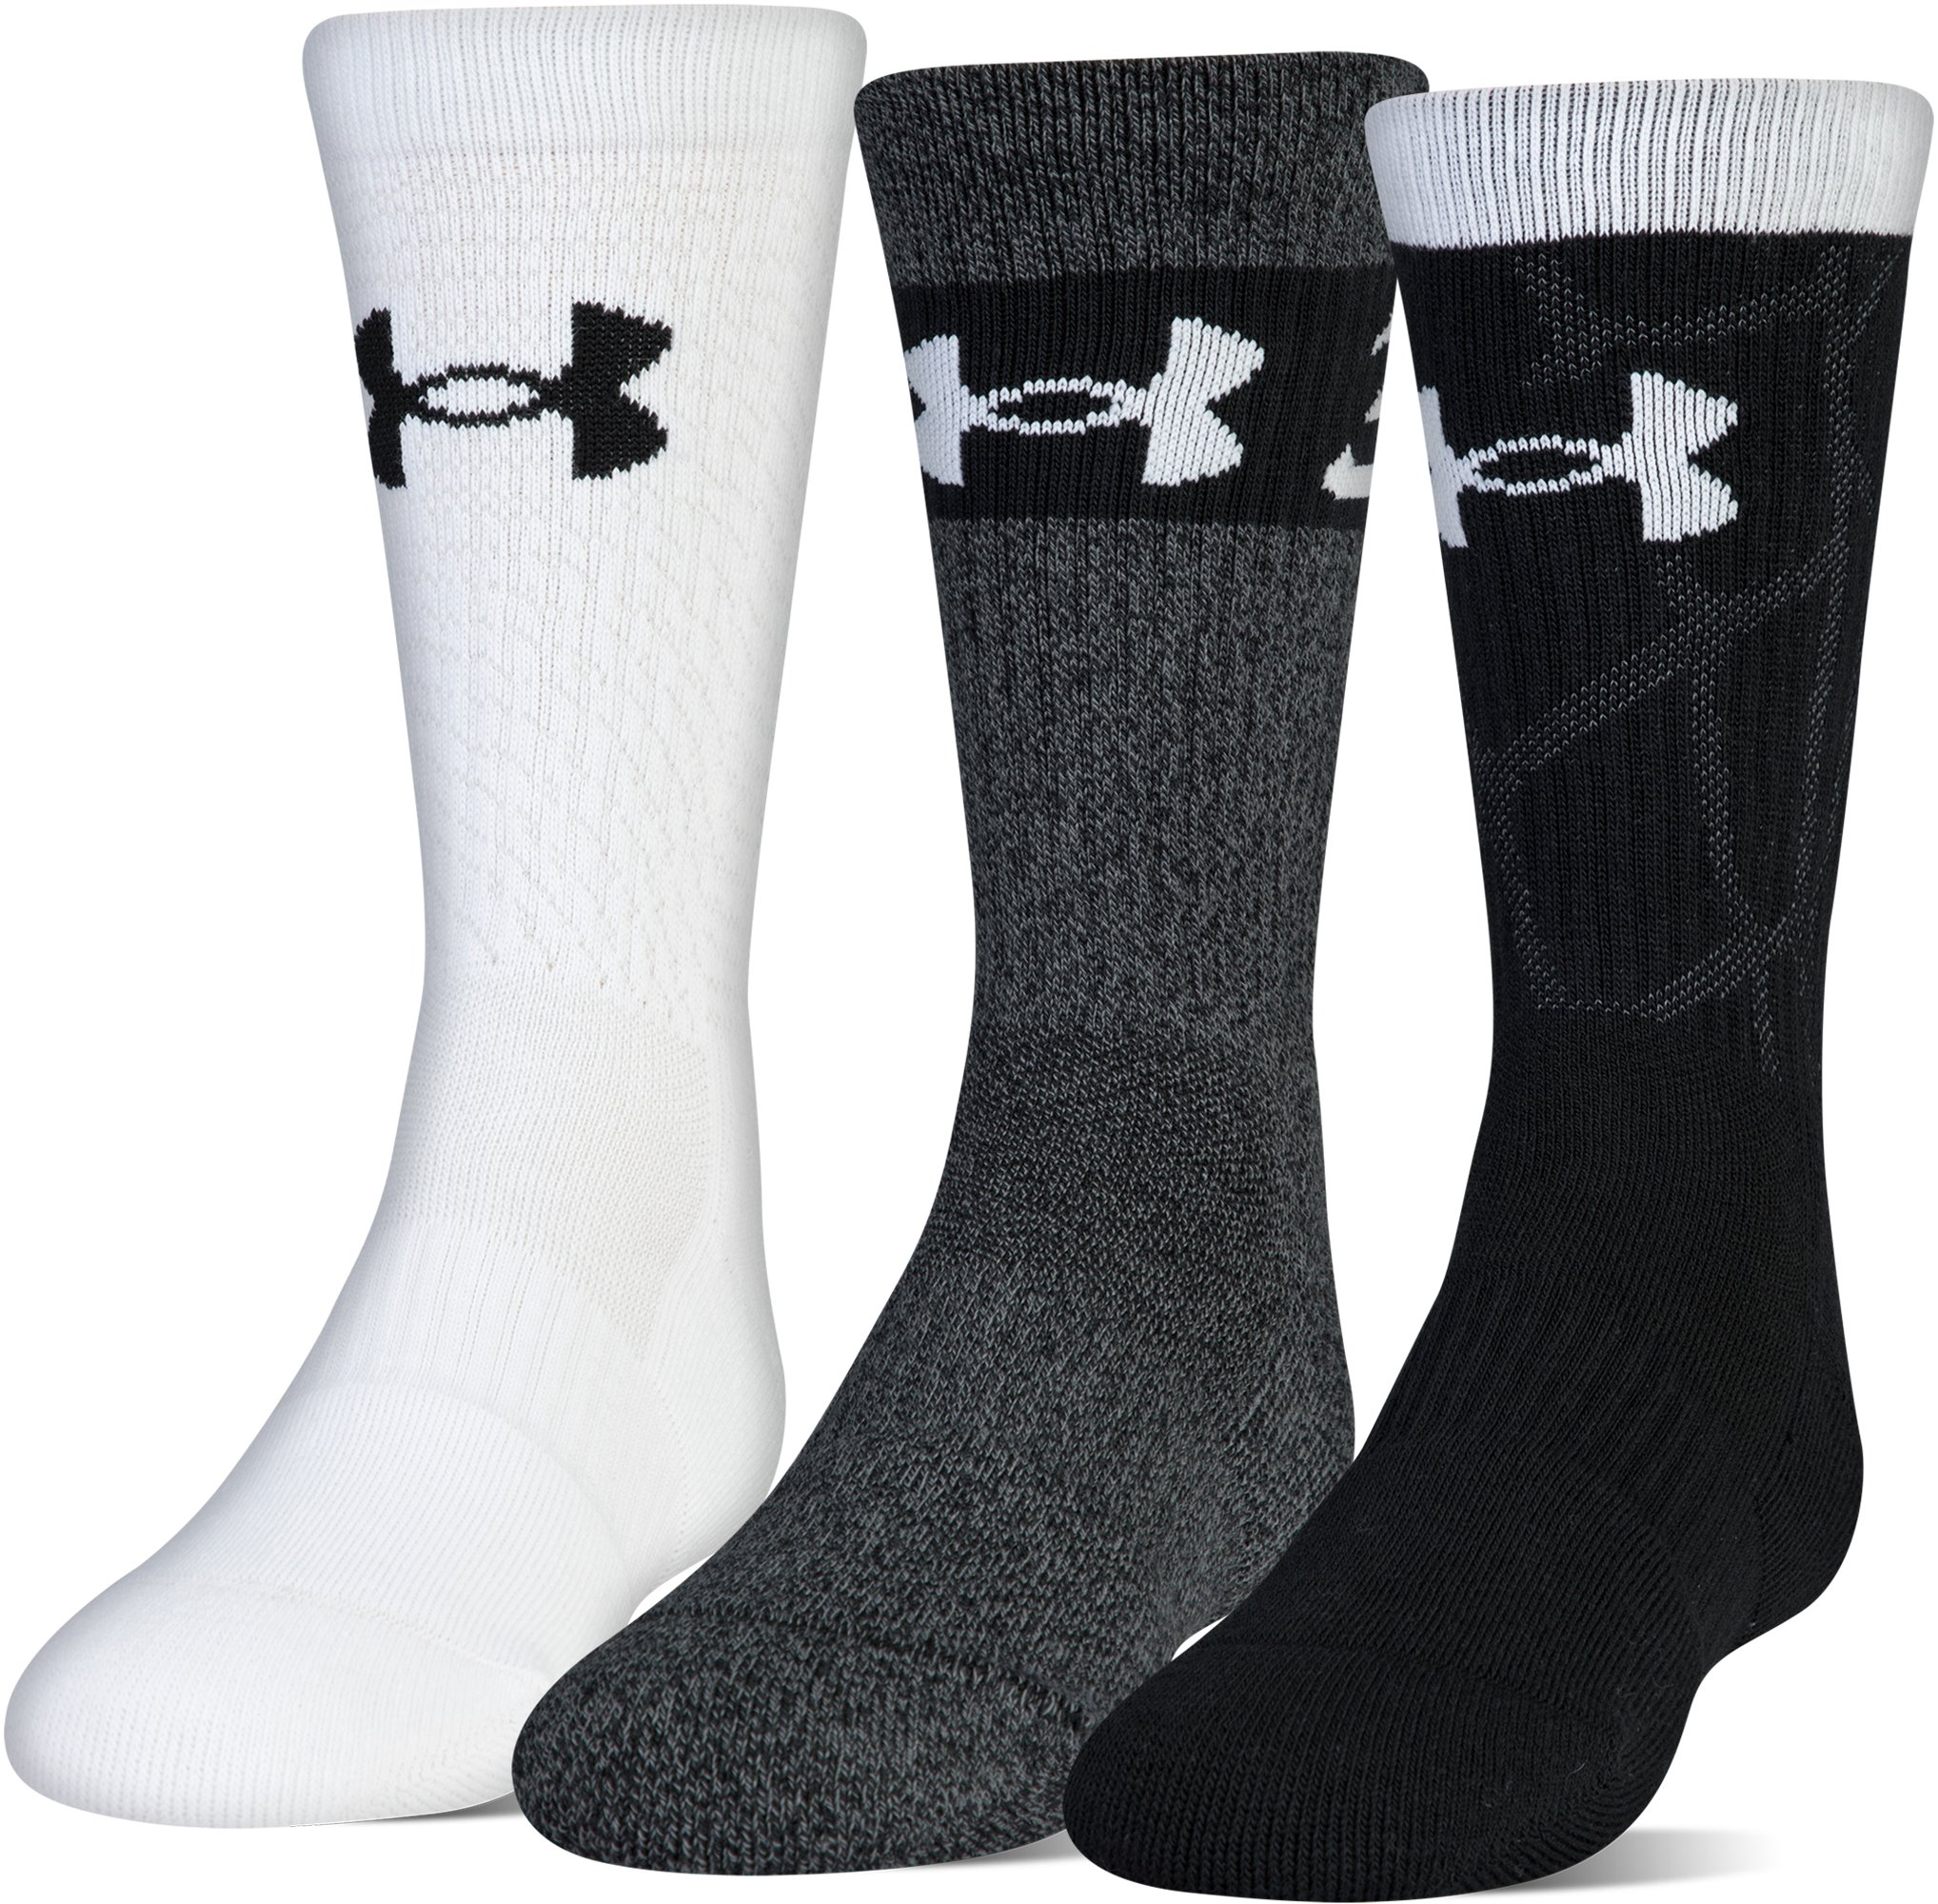 Boys SC30 Phenom 2.0 Crew Socks 3-Pack, Black , zoomed